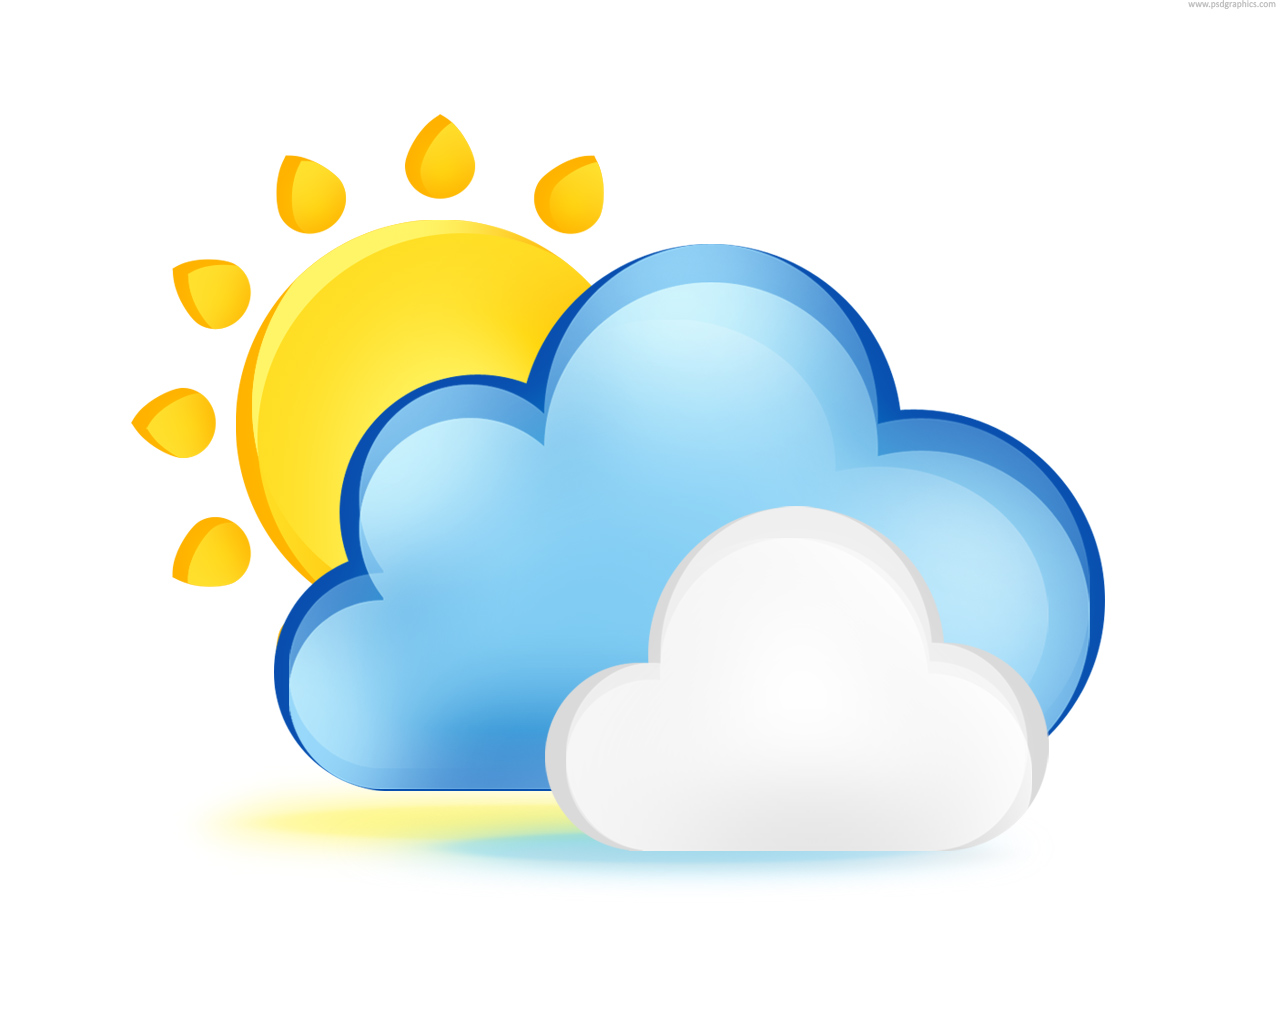 5 Weather Clouds Icons Images